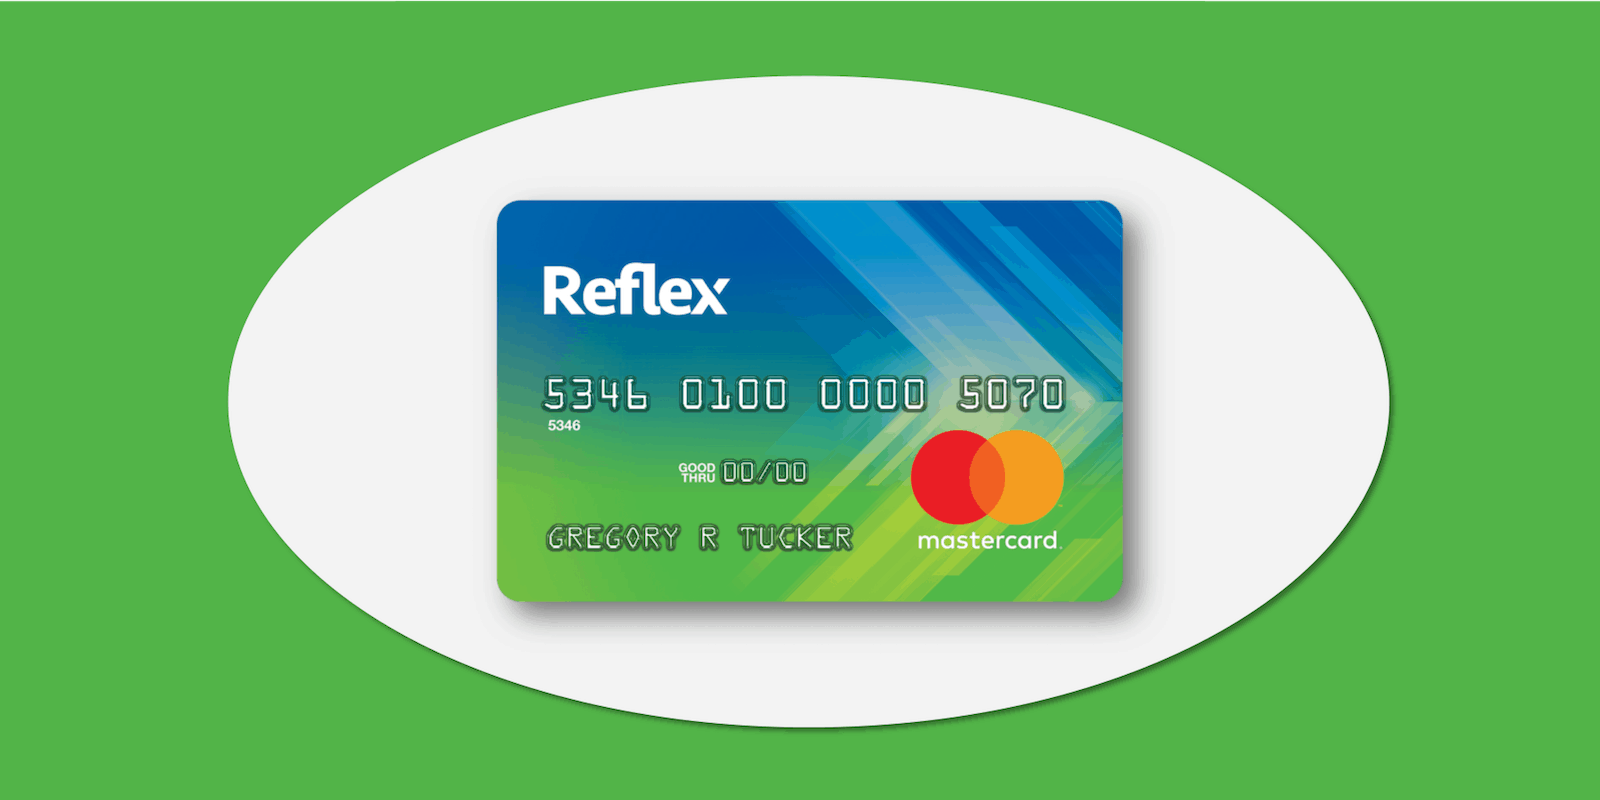 Reflex Credit Card - Feature